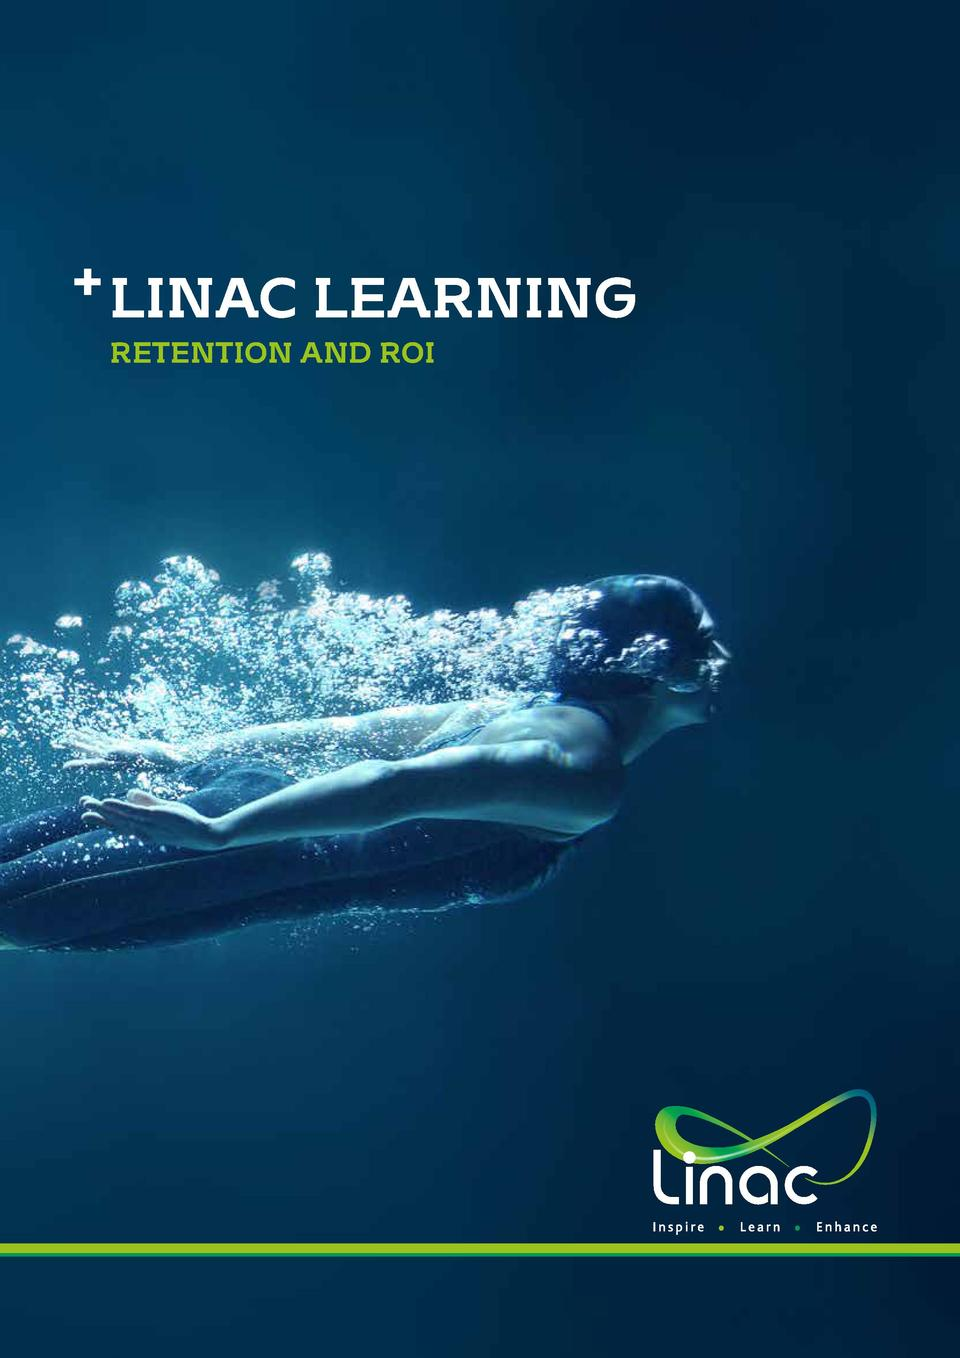 LINAC LEARNING RETENTION AND ROI